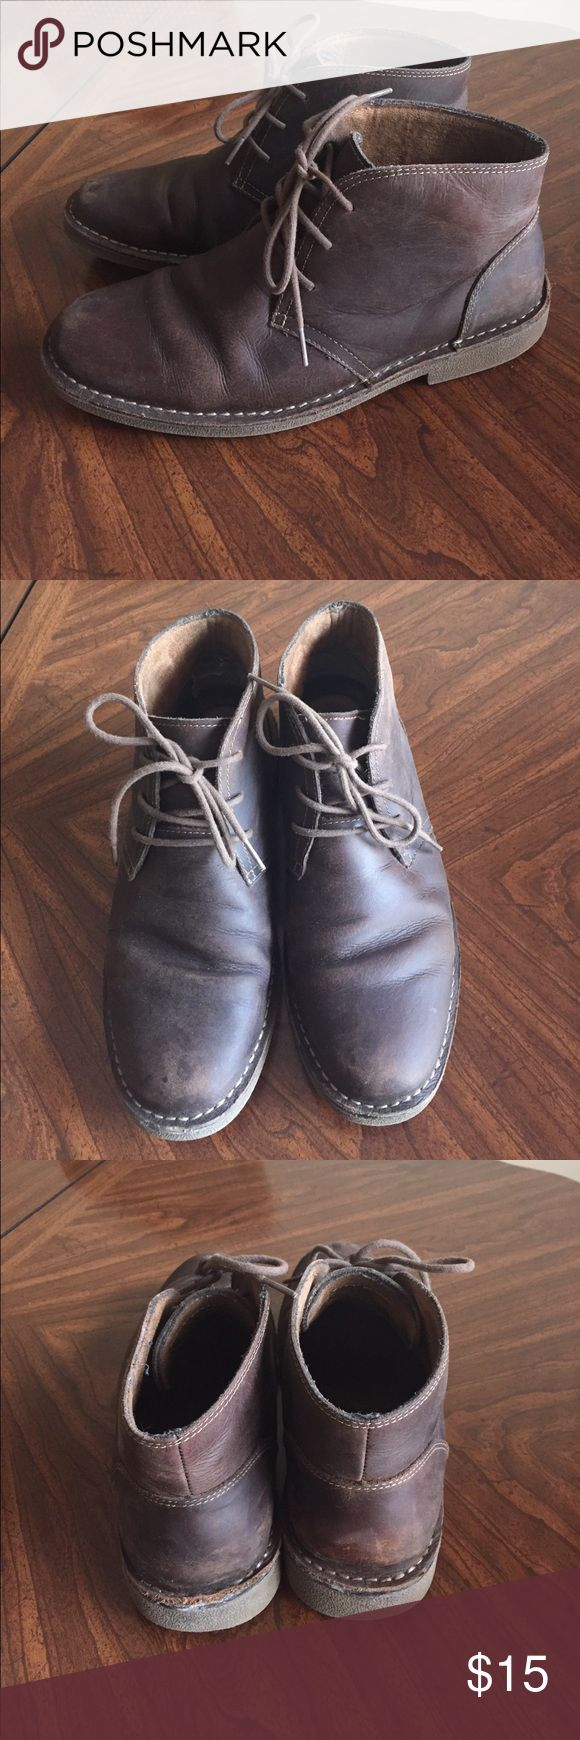 Men's Dockers brown leather chukka boots Men's Dockers brown leather chukka boots Dockers Shoes Chukka Boots